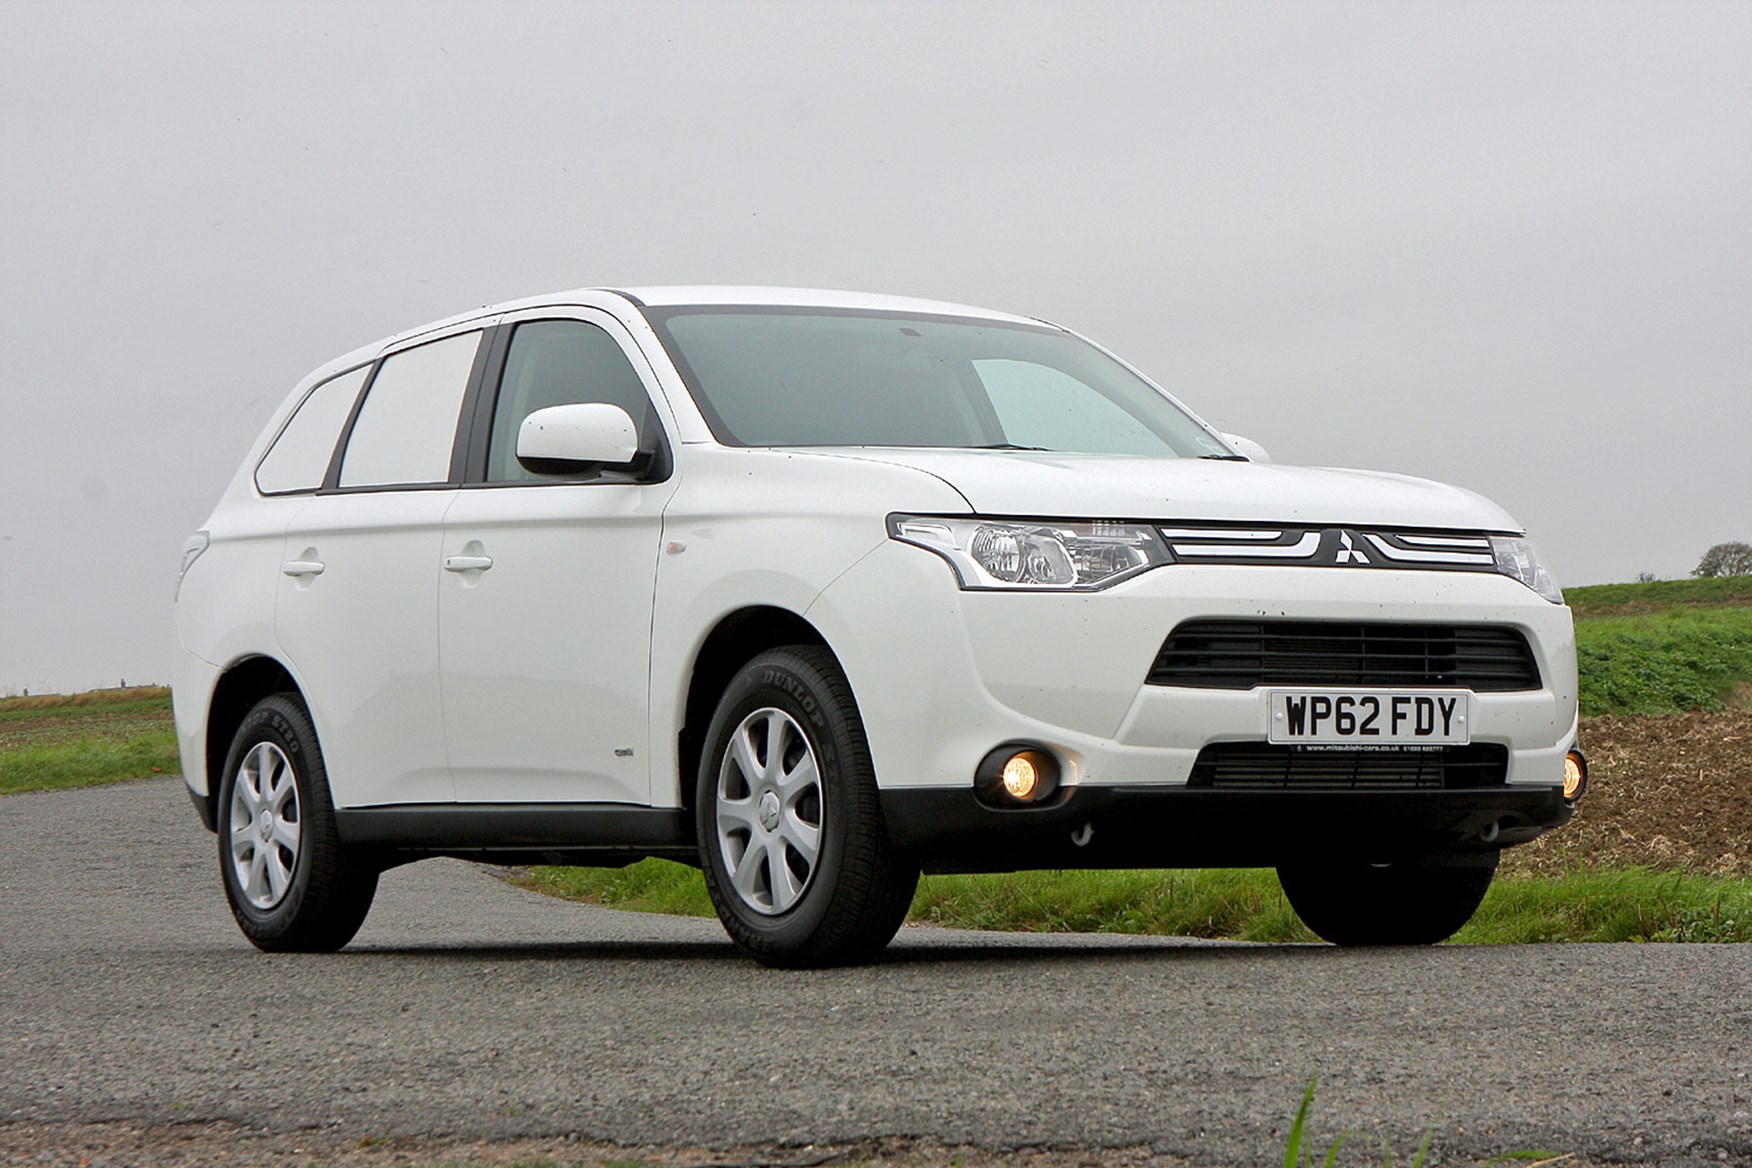 Mitsubishi Outlander Commercial 4x4 van review - 2013 diesel, white, front view